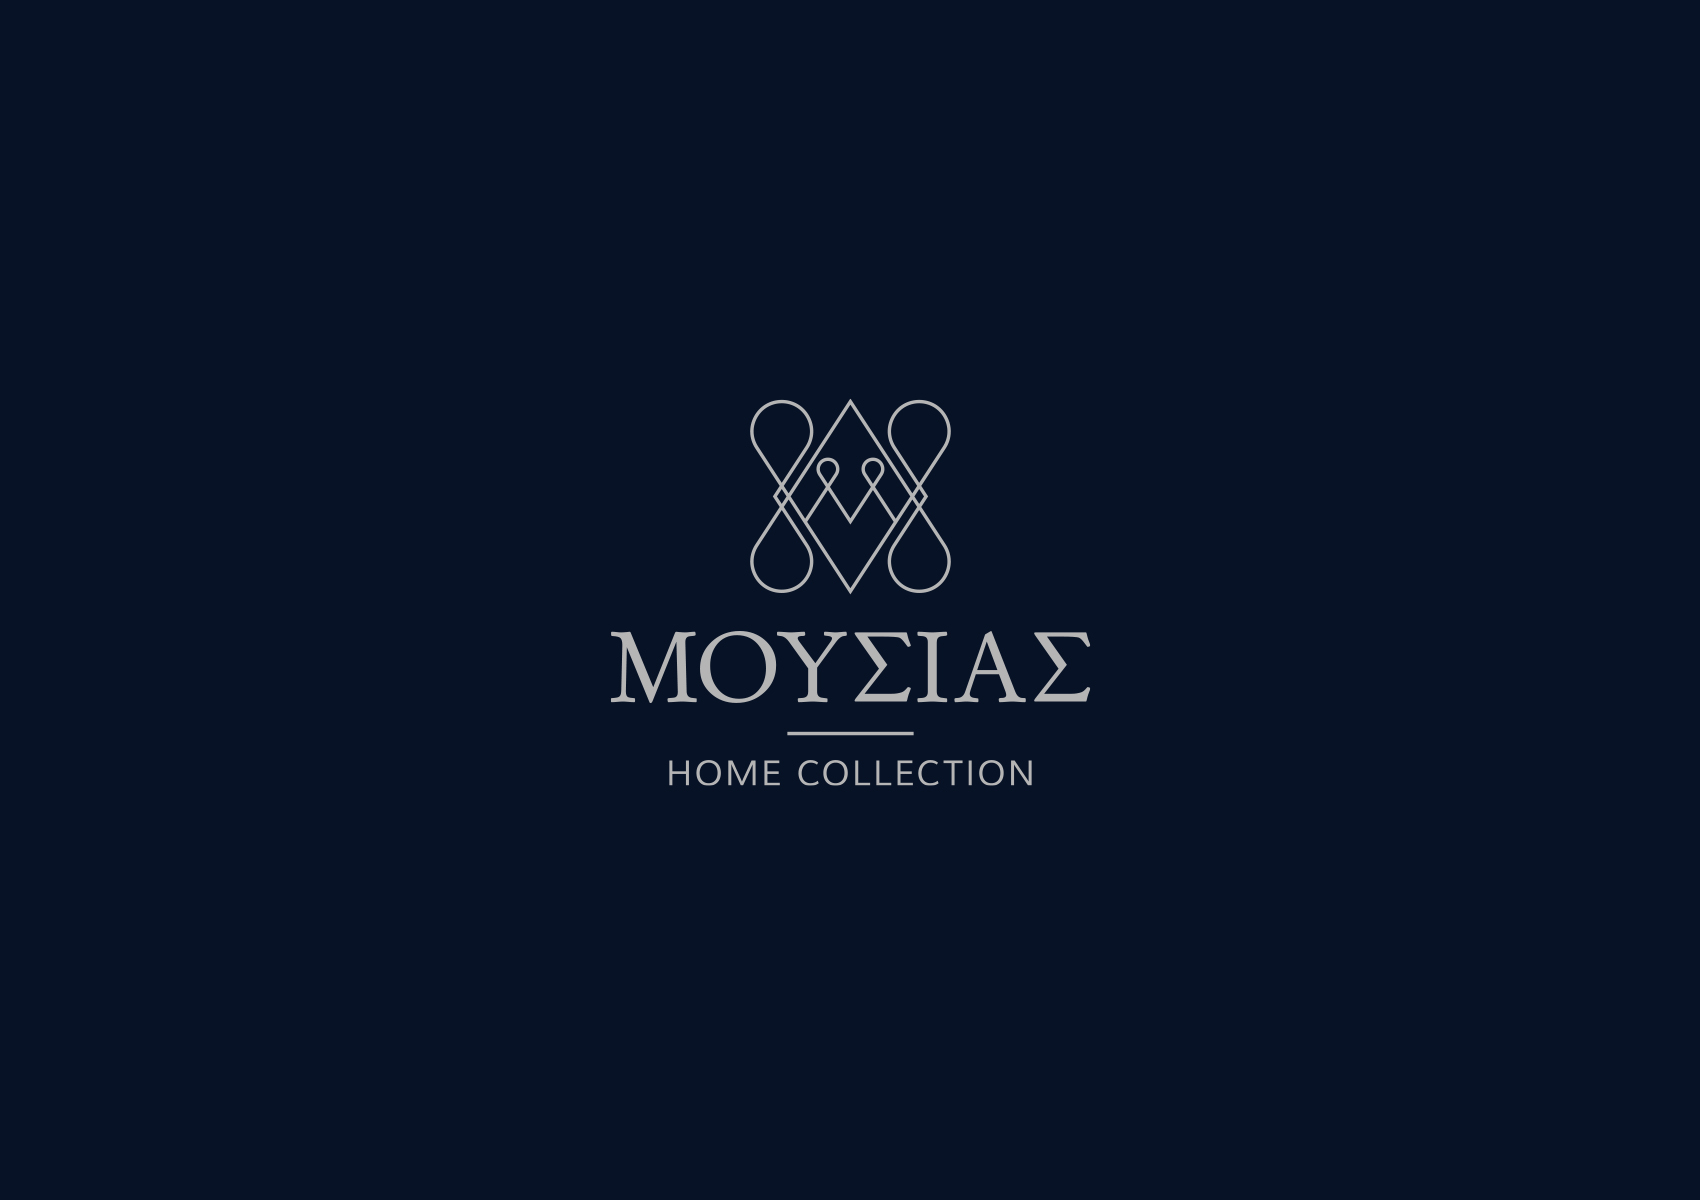 Moussias Home Collection logo 1700x1200 by xhristakis